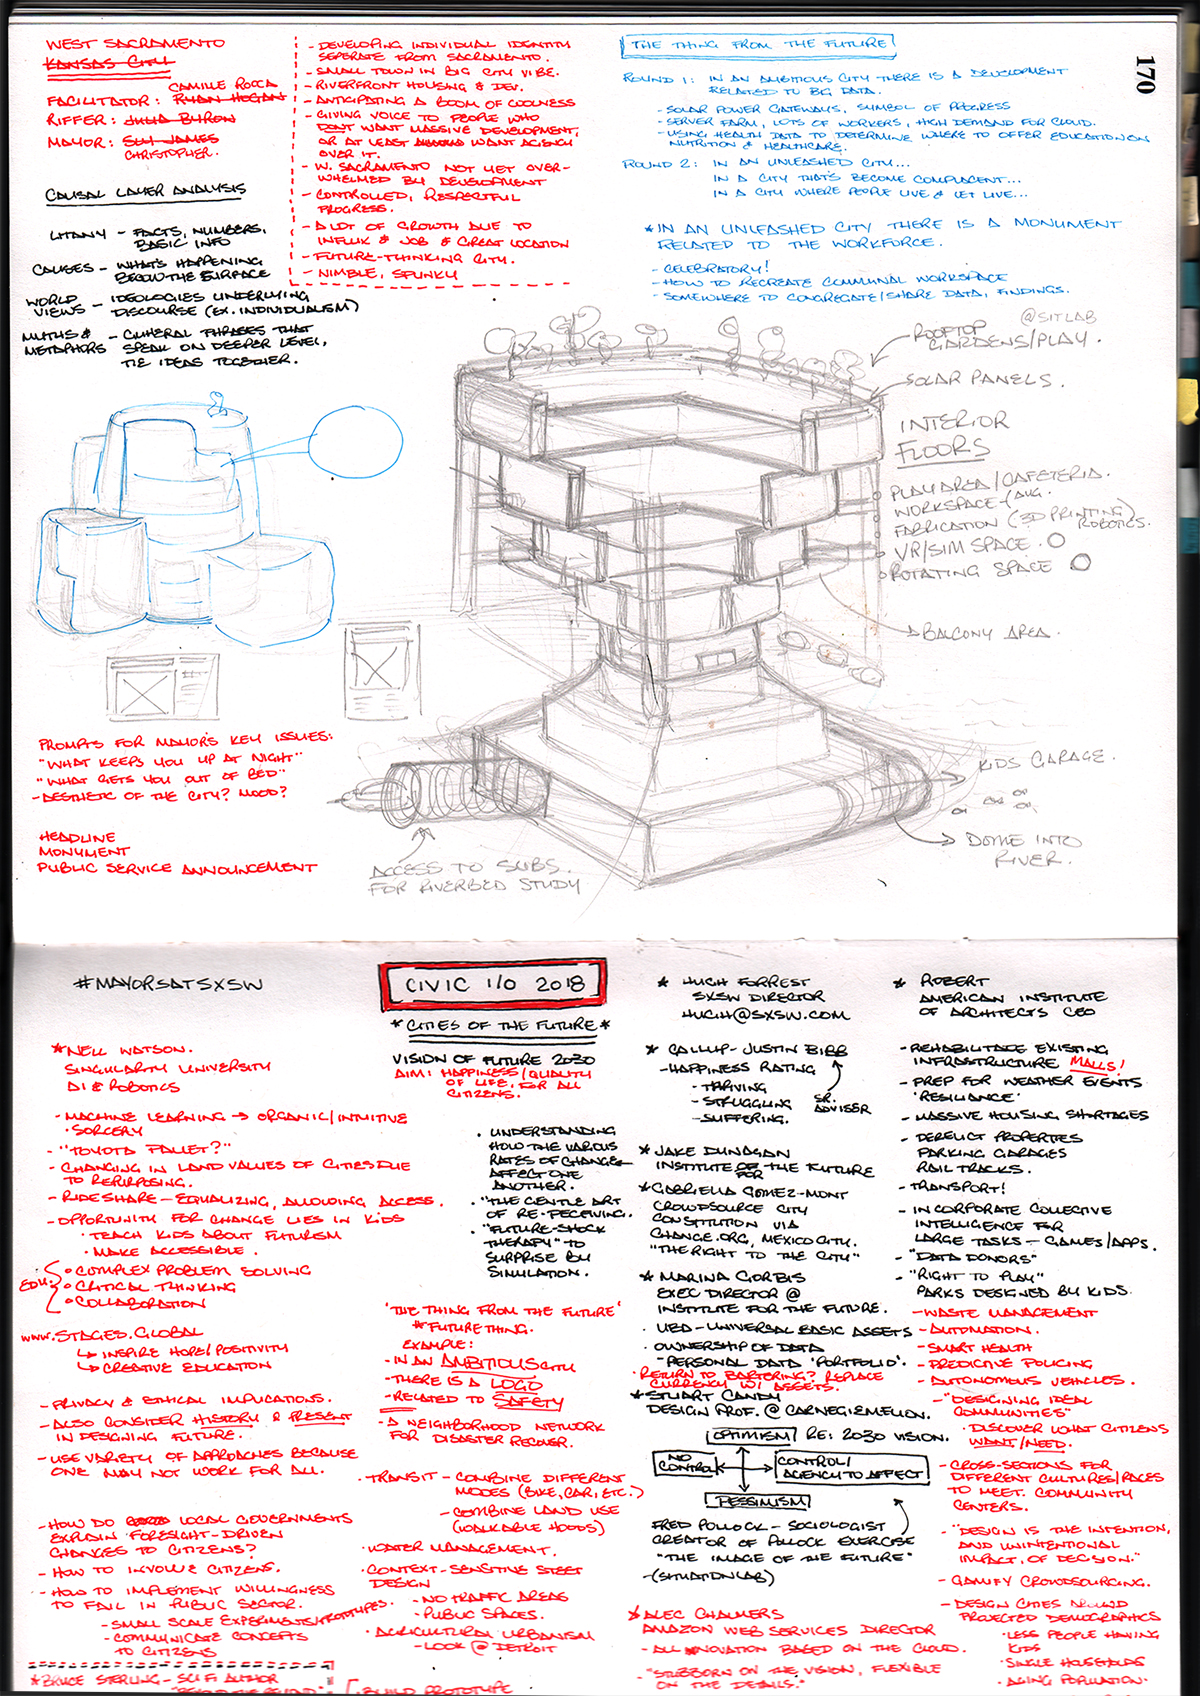 Notes from the conference and preliminary sketches of the building.